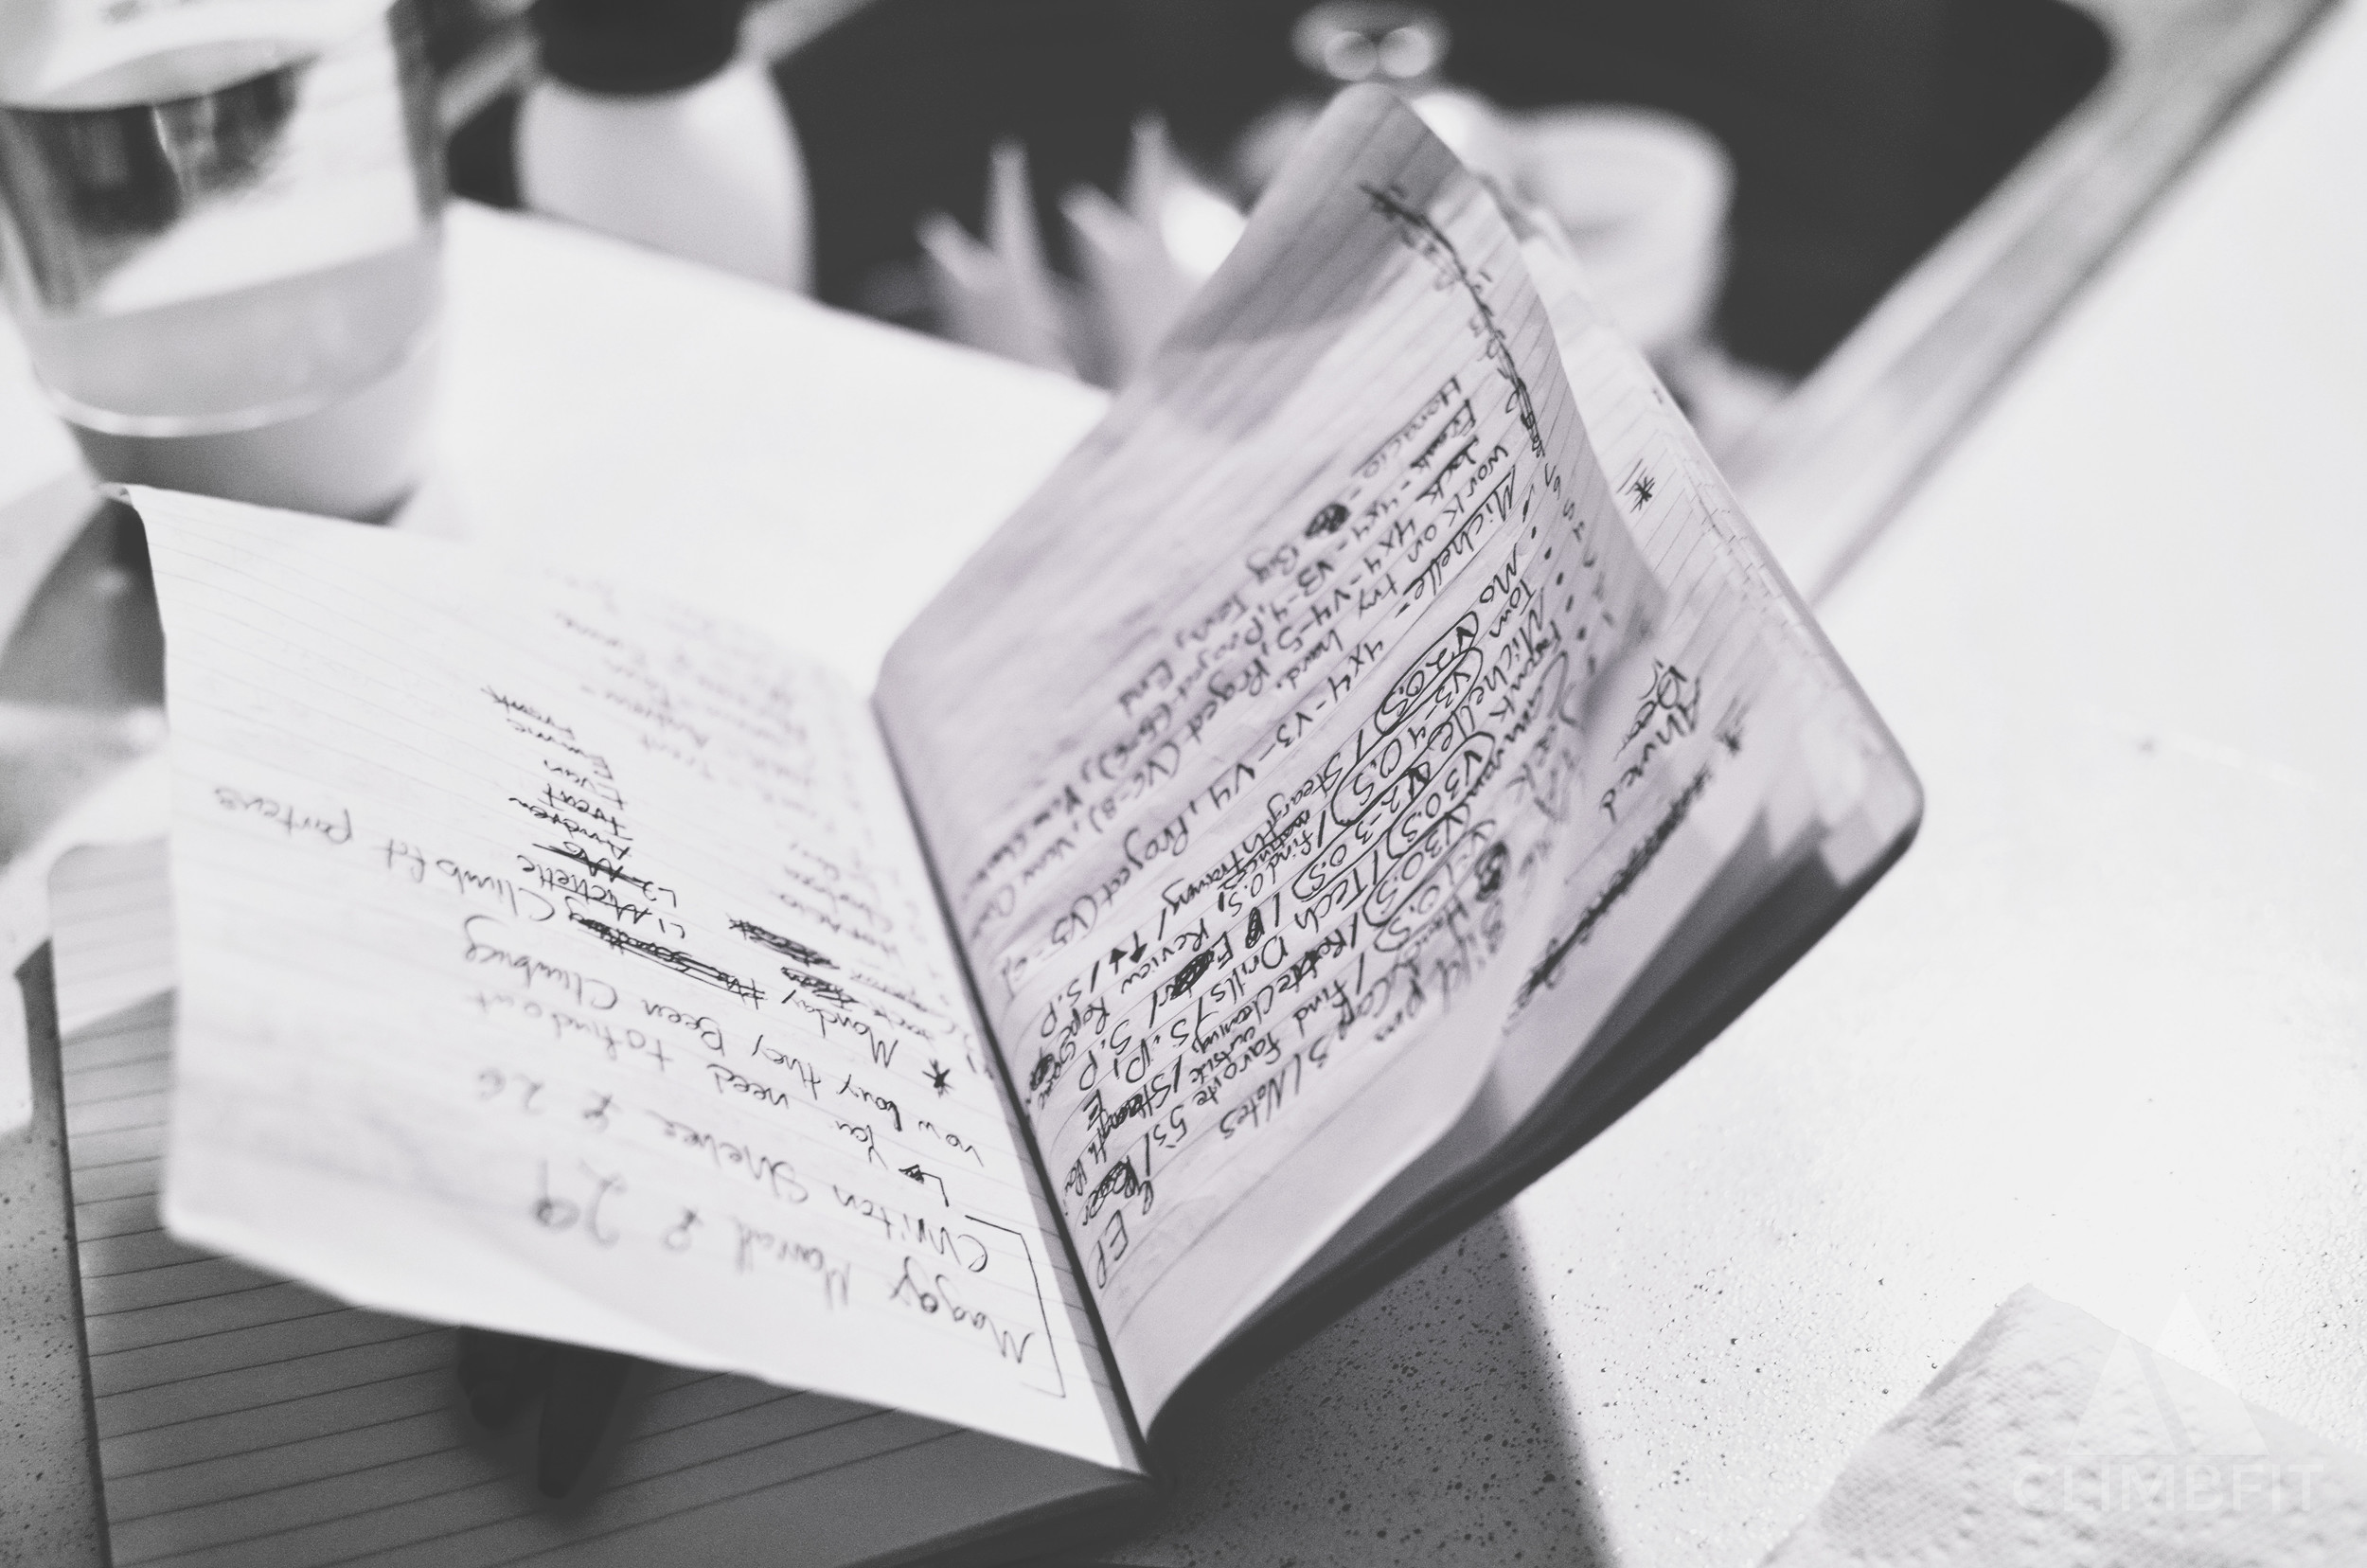 Mario's notebook, used for reference during ClimbFit sessions, filled with the obsessive amount of notes he takes.